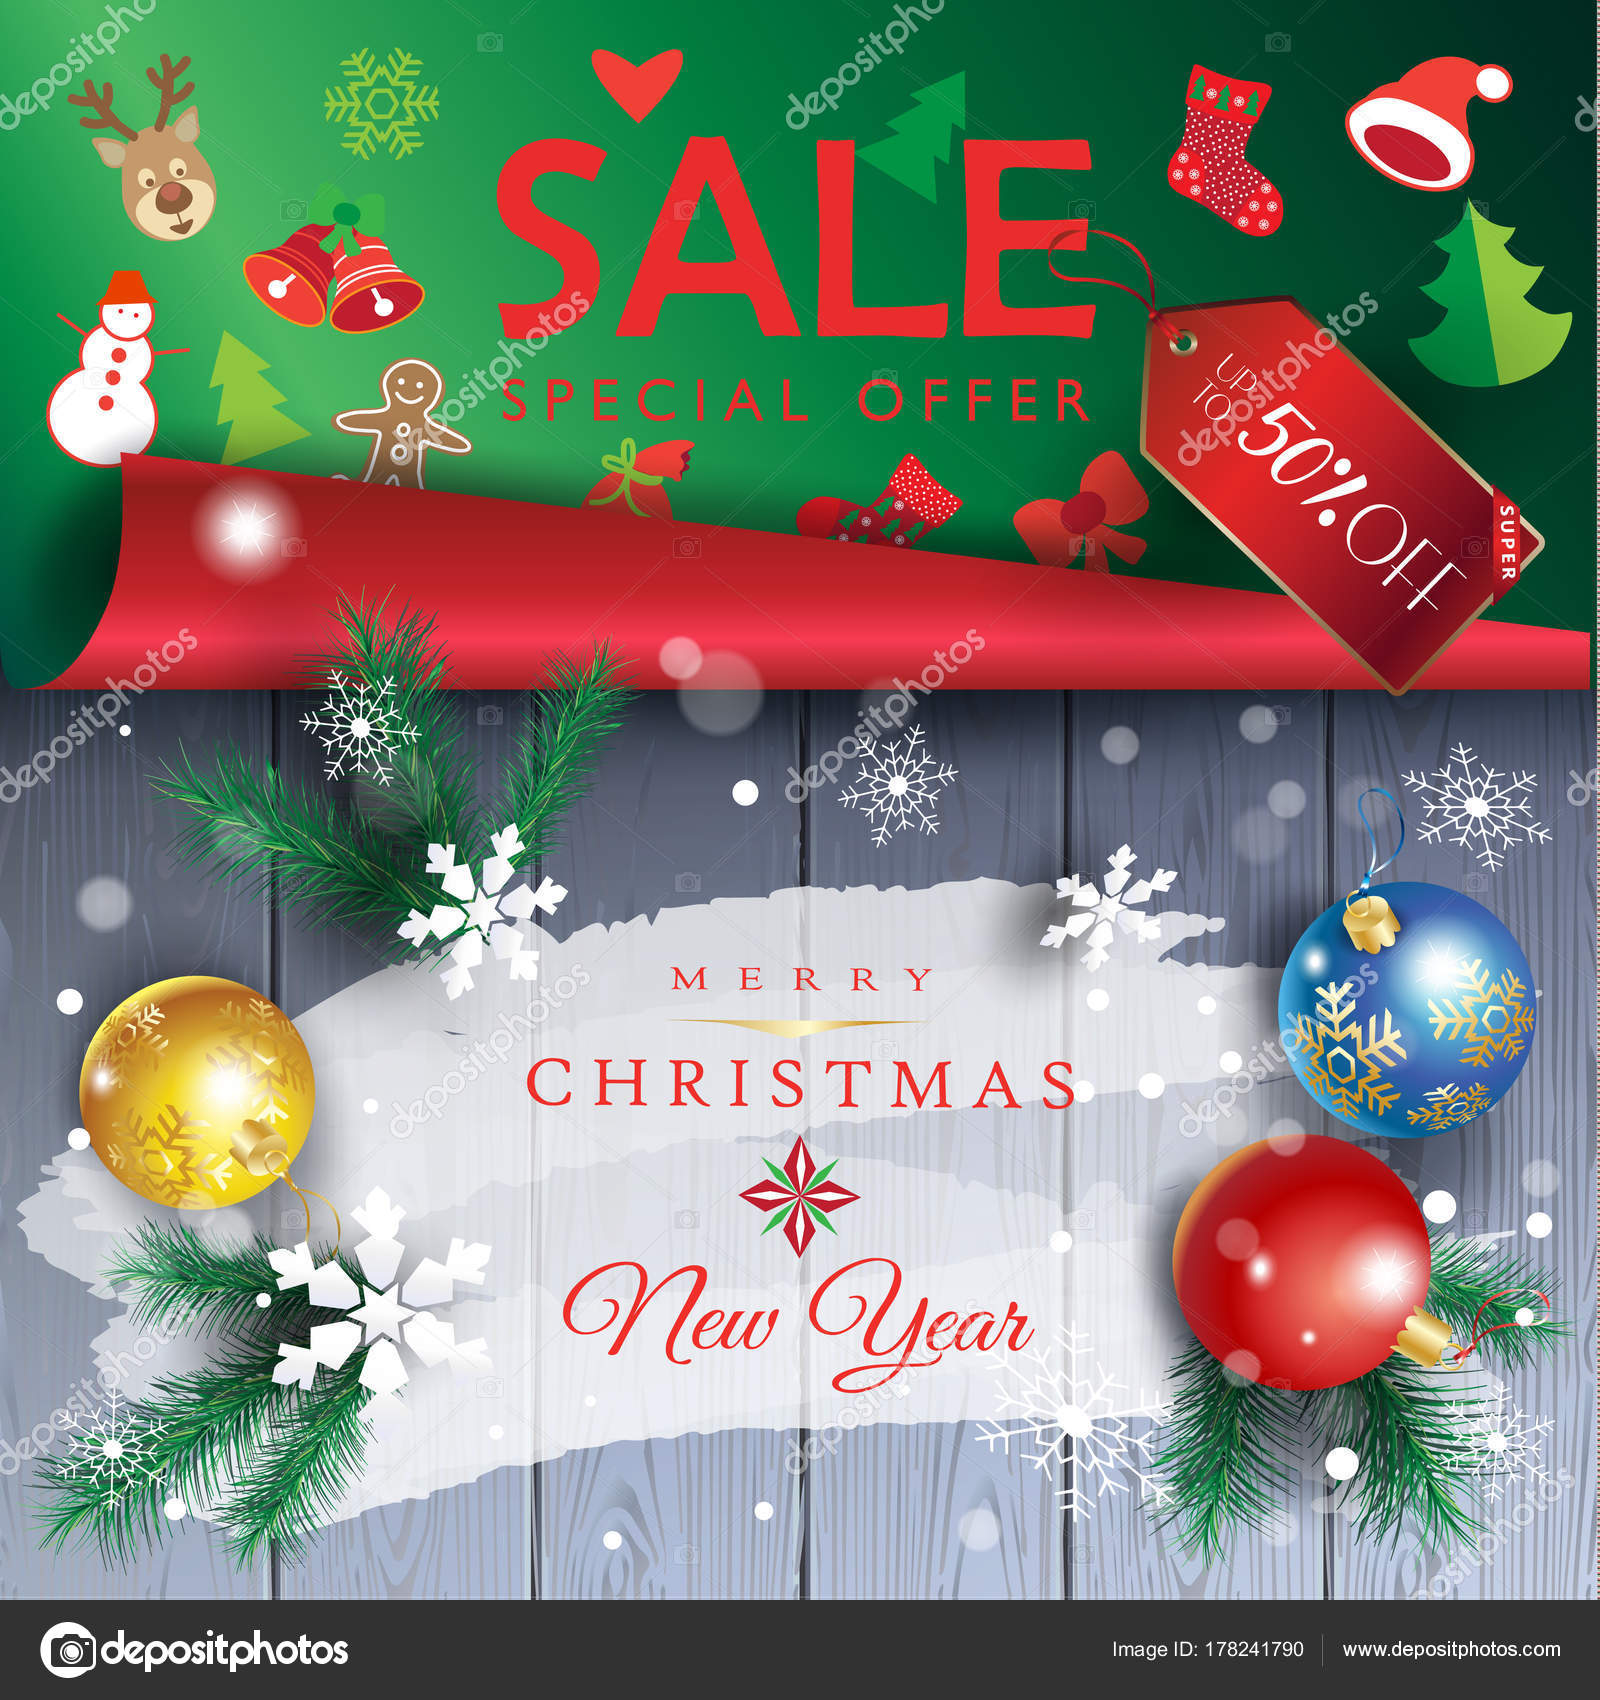 Sale Christmas Gift Card Winter Holiday Symbols Happy New Year ...